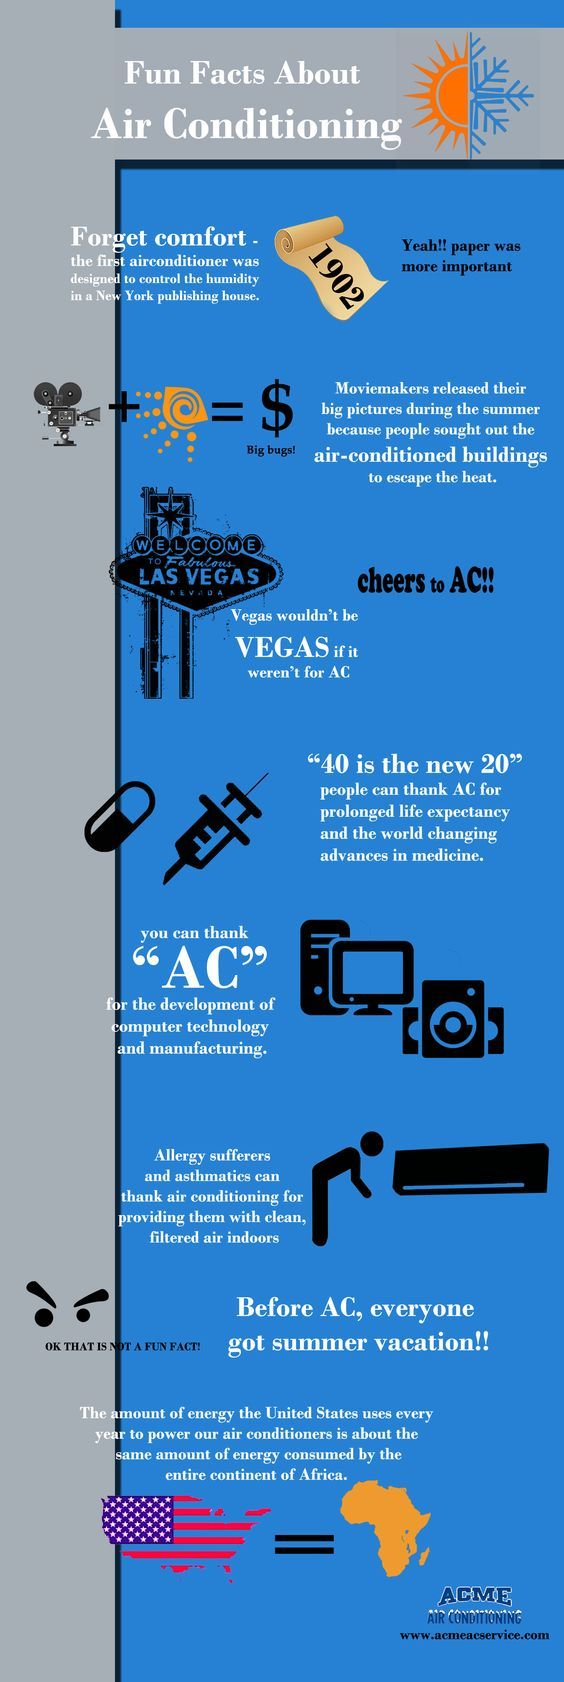 Fun Facts About Air Conditioning Infographic Funfacts Airconditioningfunfacts Airconditioning Comfor Air Conditioning Repair Ac Repair Services Fun Facts